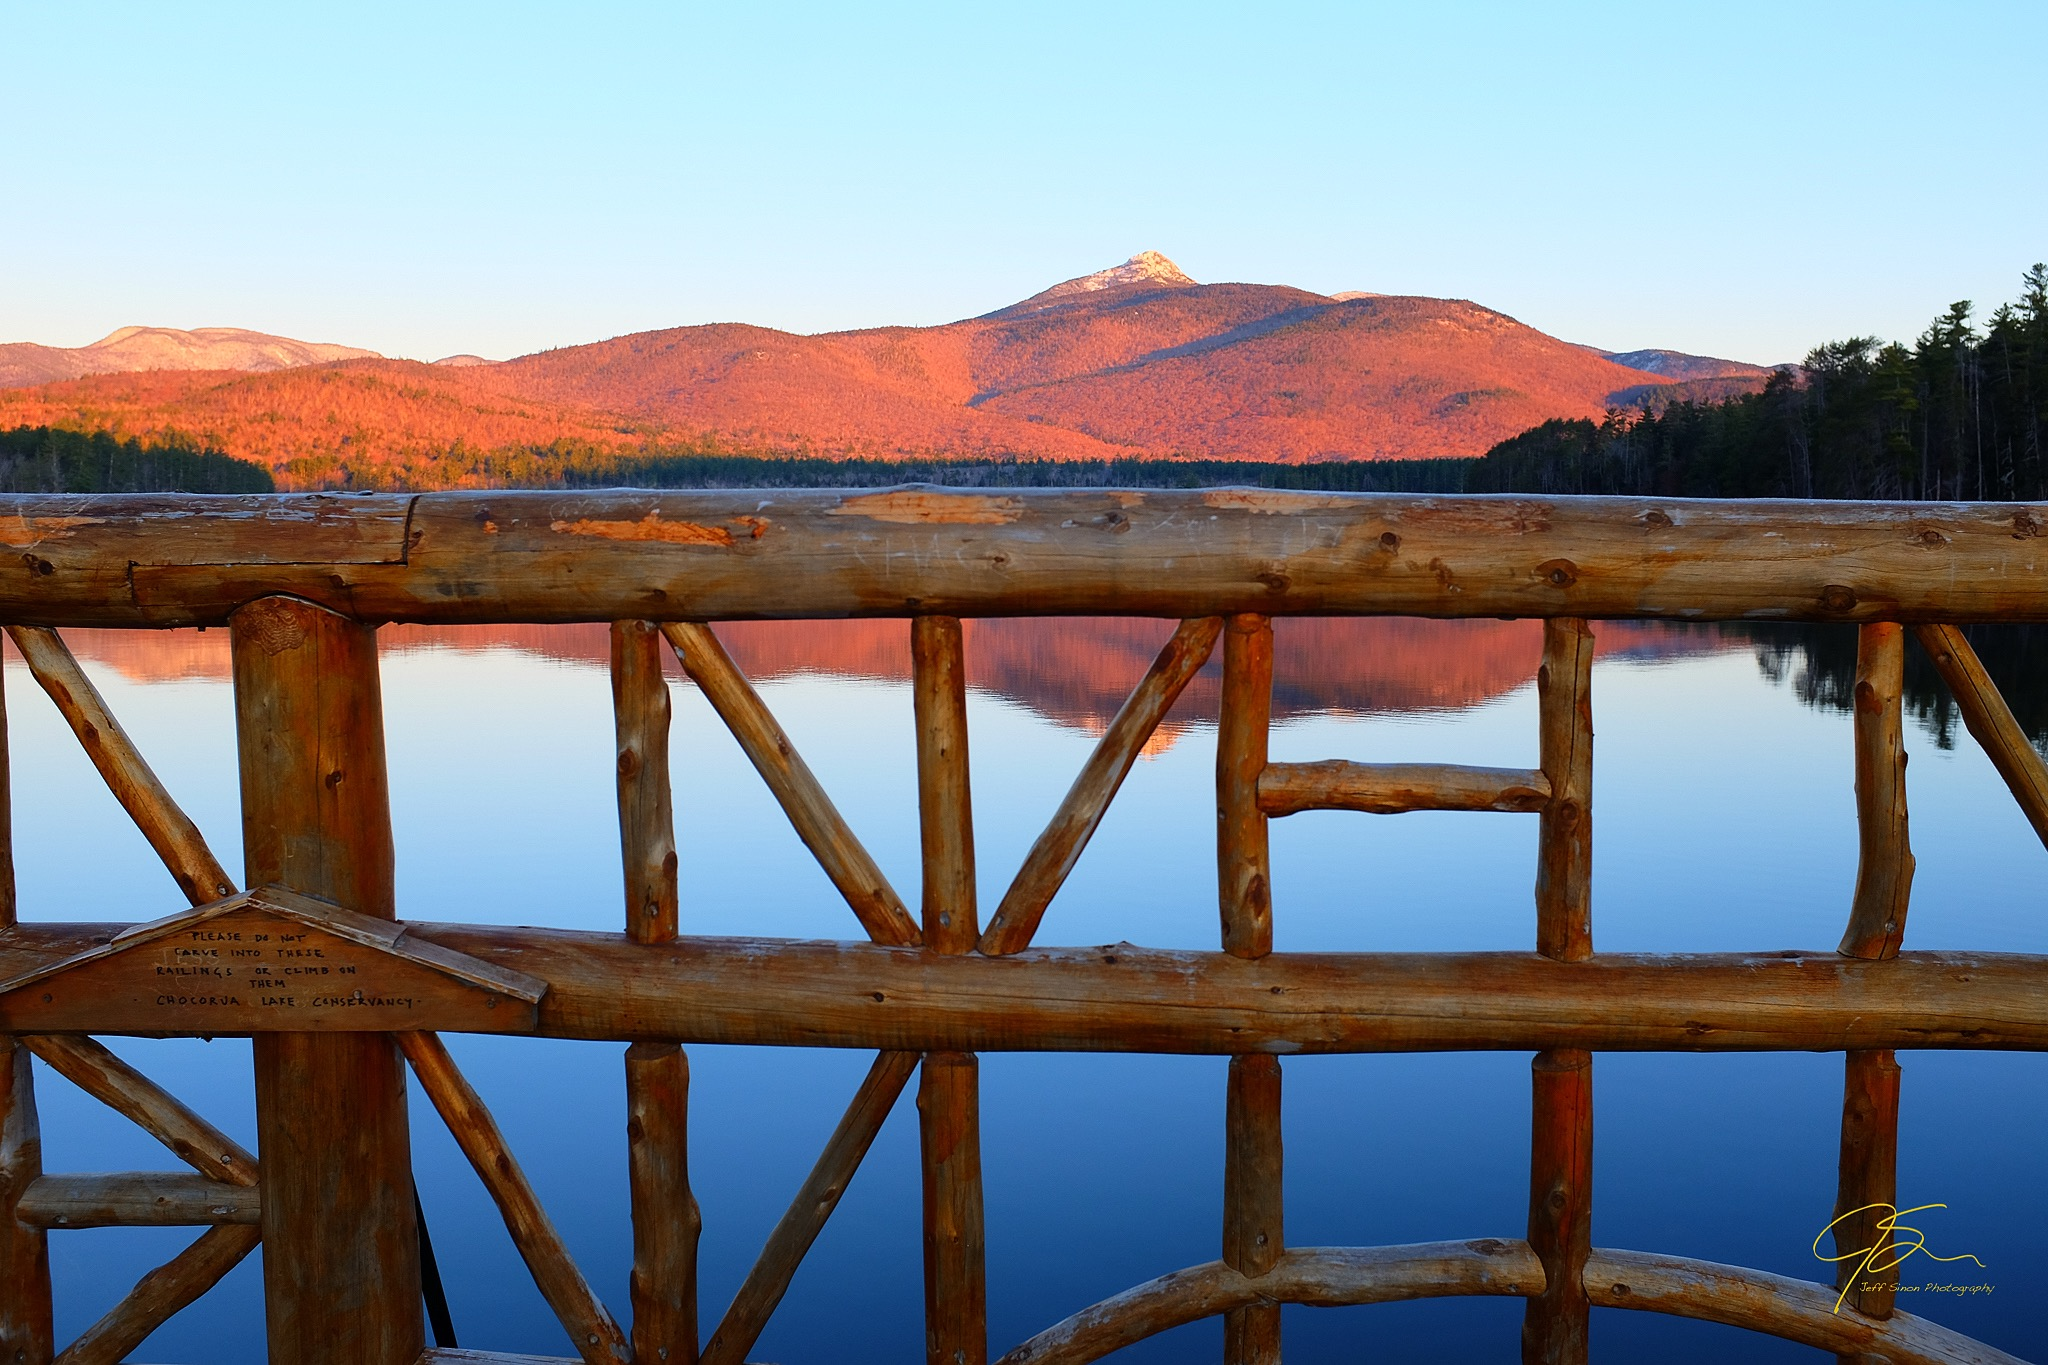 mount Chocorua as seen looking over the hand-made raisins of the bridge on chocorua lake road